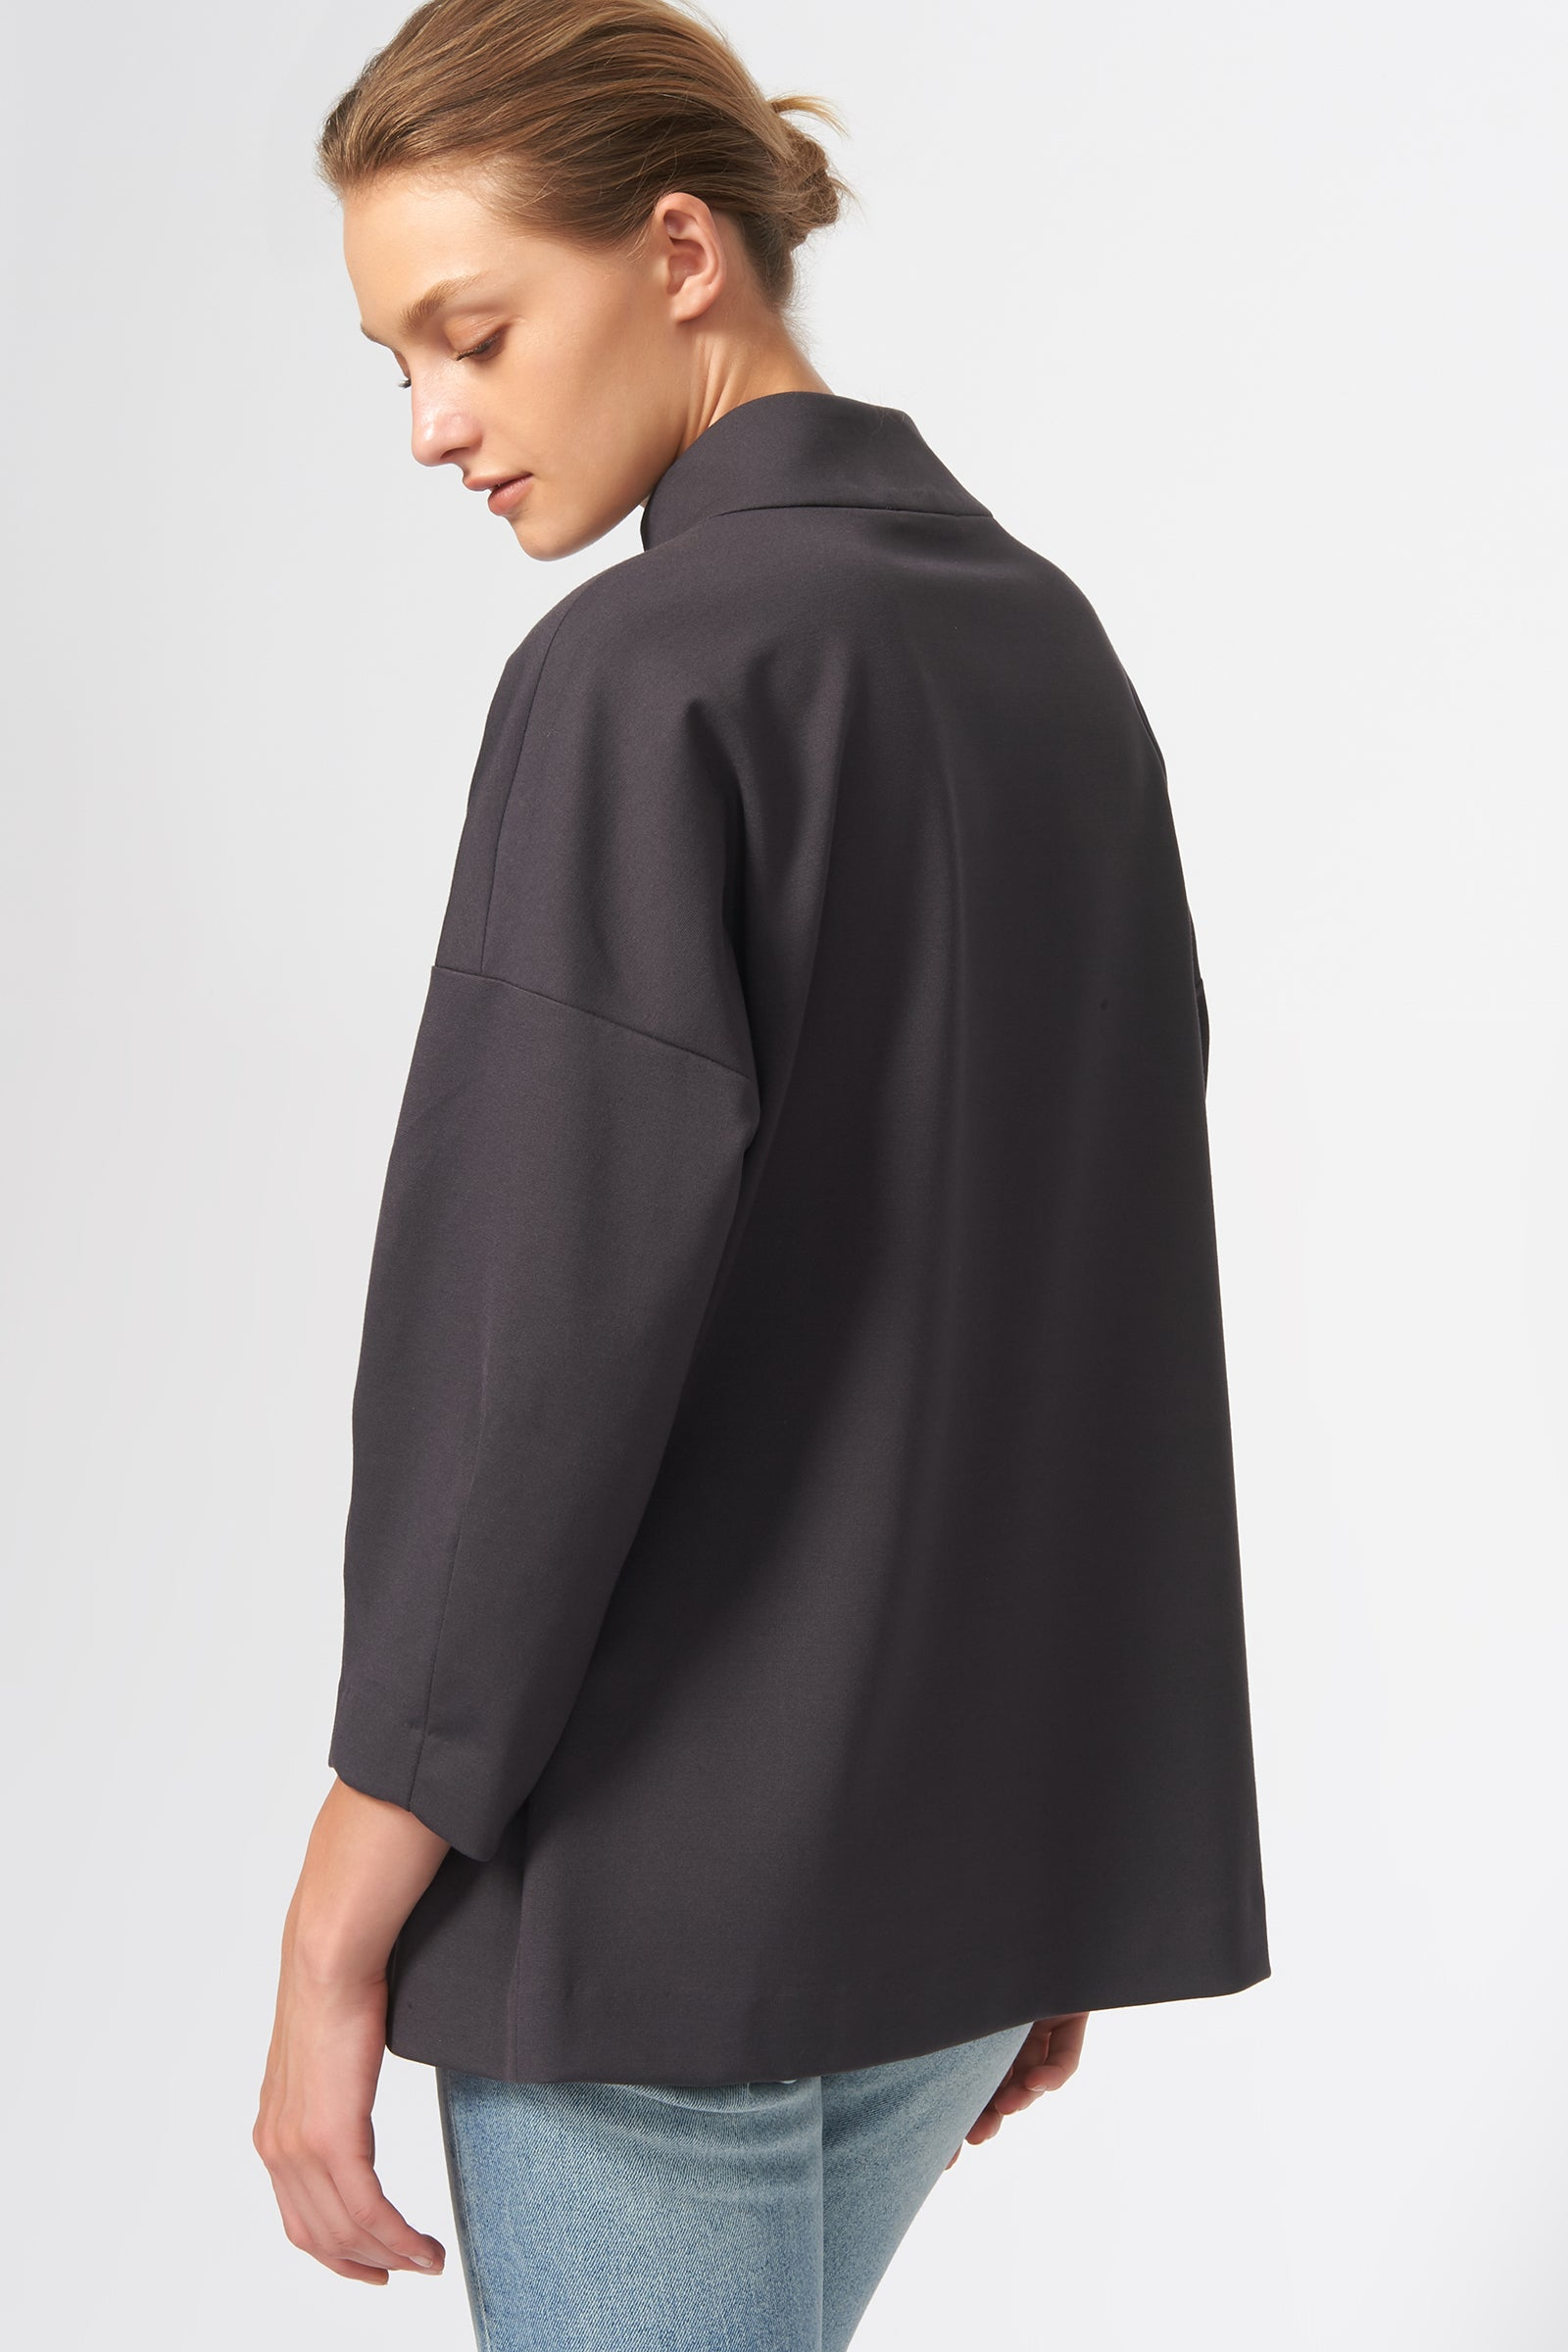 Kal Rieman Quarter Zip Ponte Top in Charcoal on Model Side View